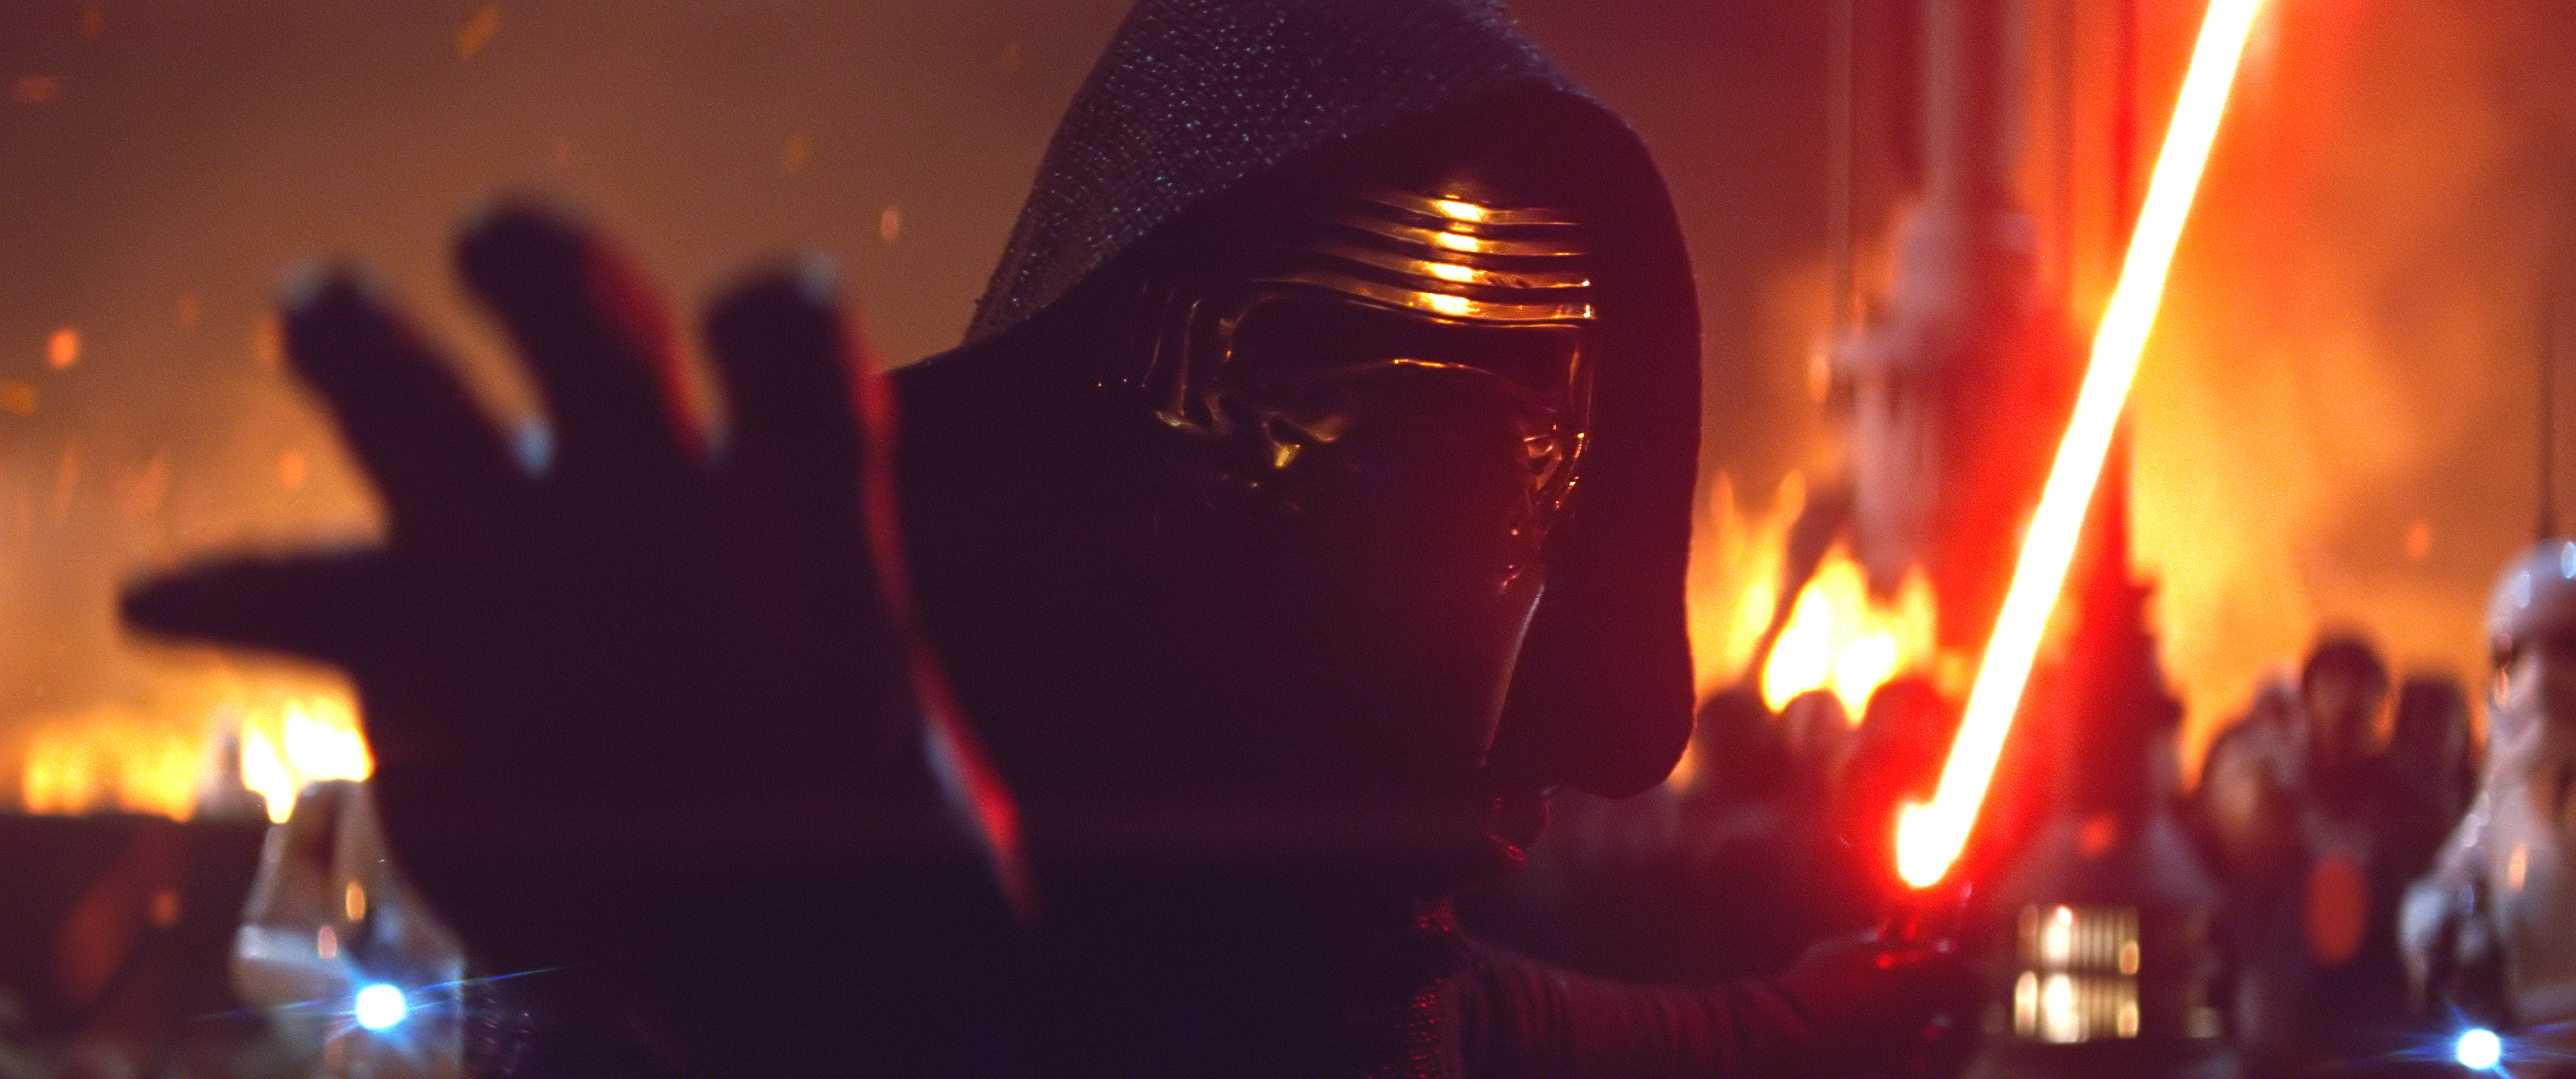 Menacing new weapon in Star Wars: The Force Awakens gets name, description